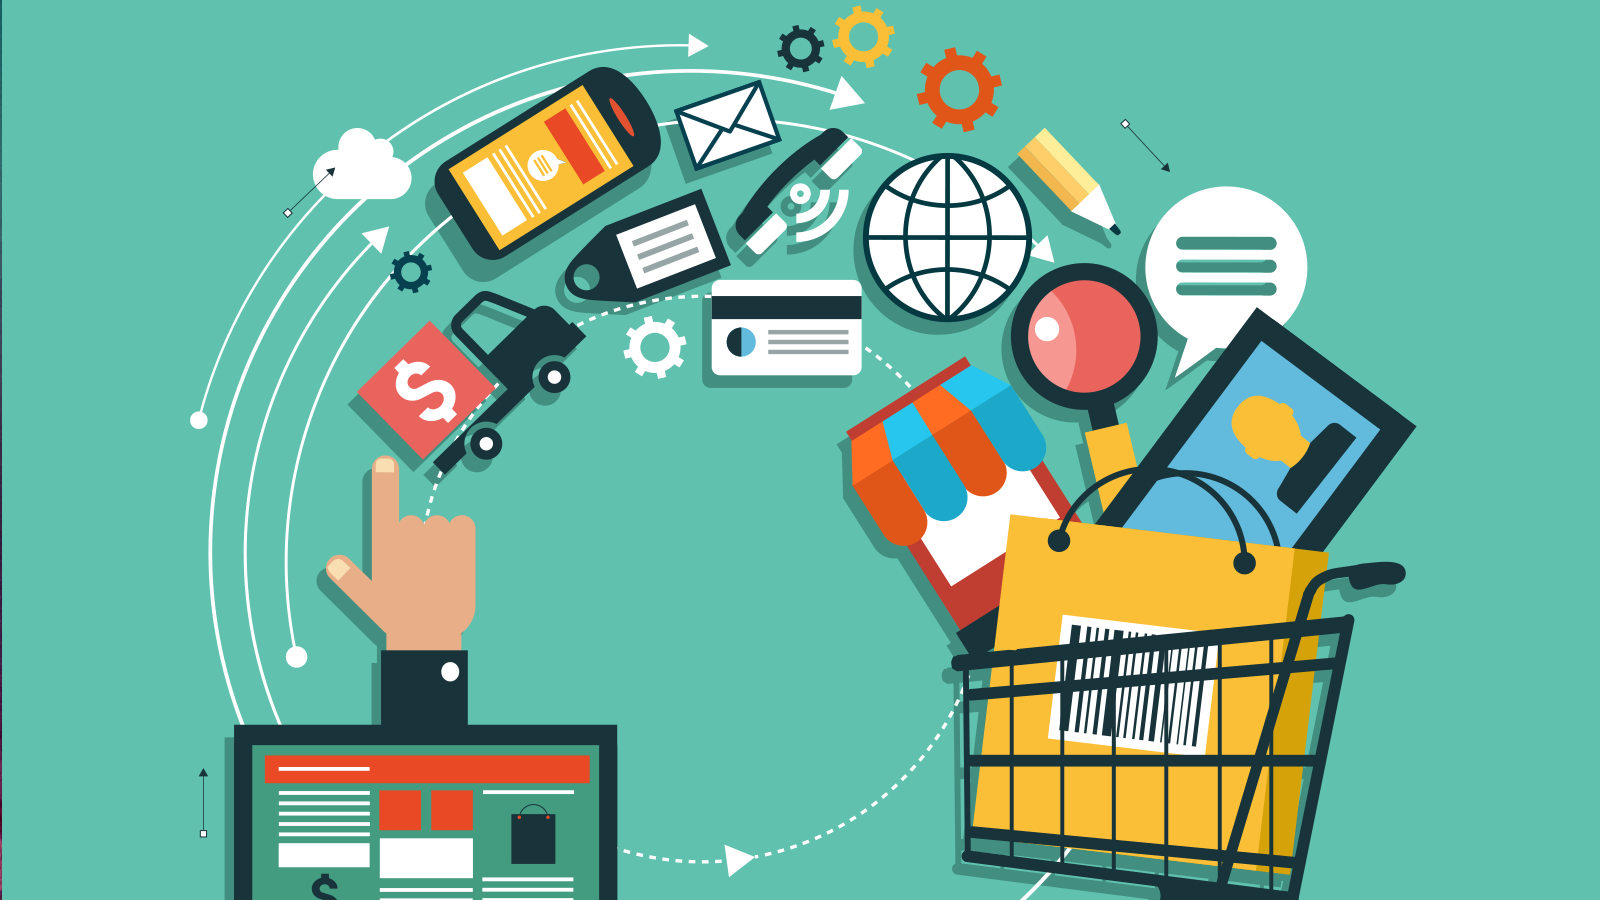 Do you need an Ecommerce Website Development Company that can make you Rich?